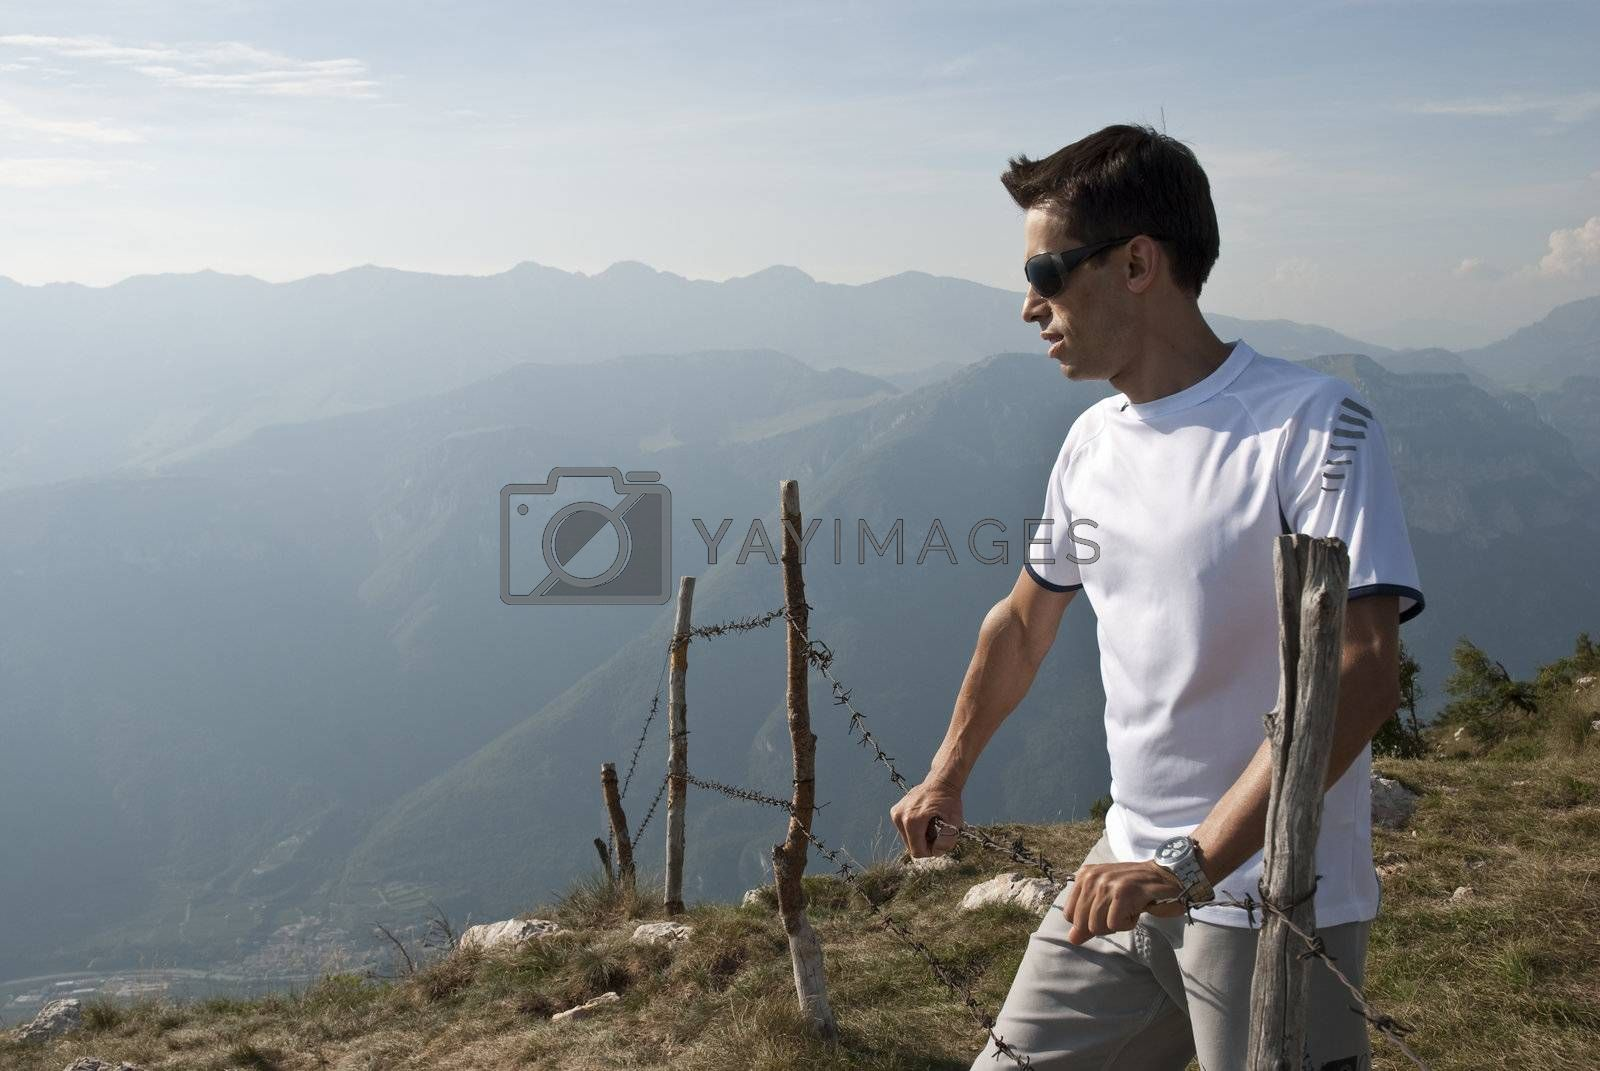 Young man against mountain background in a countryside hiking style scenary.